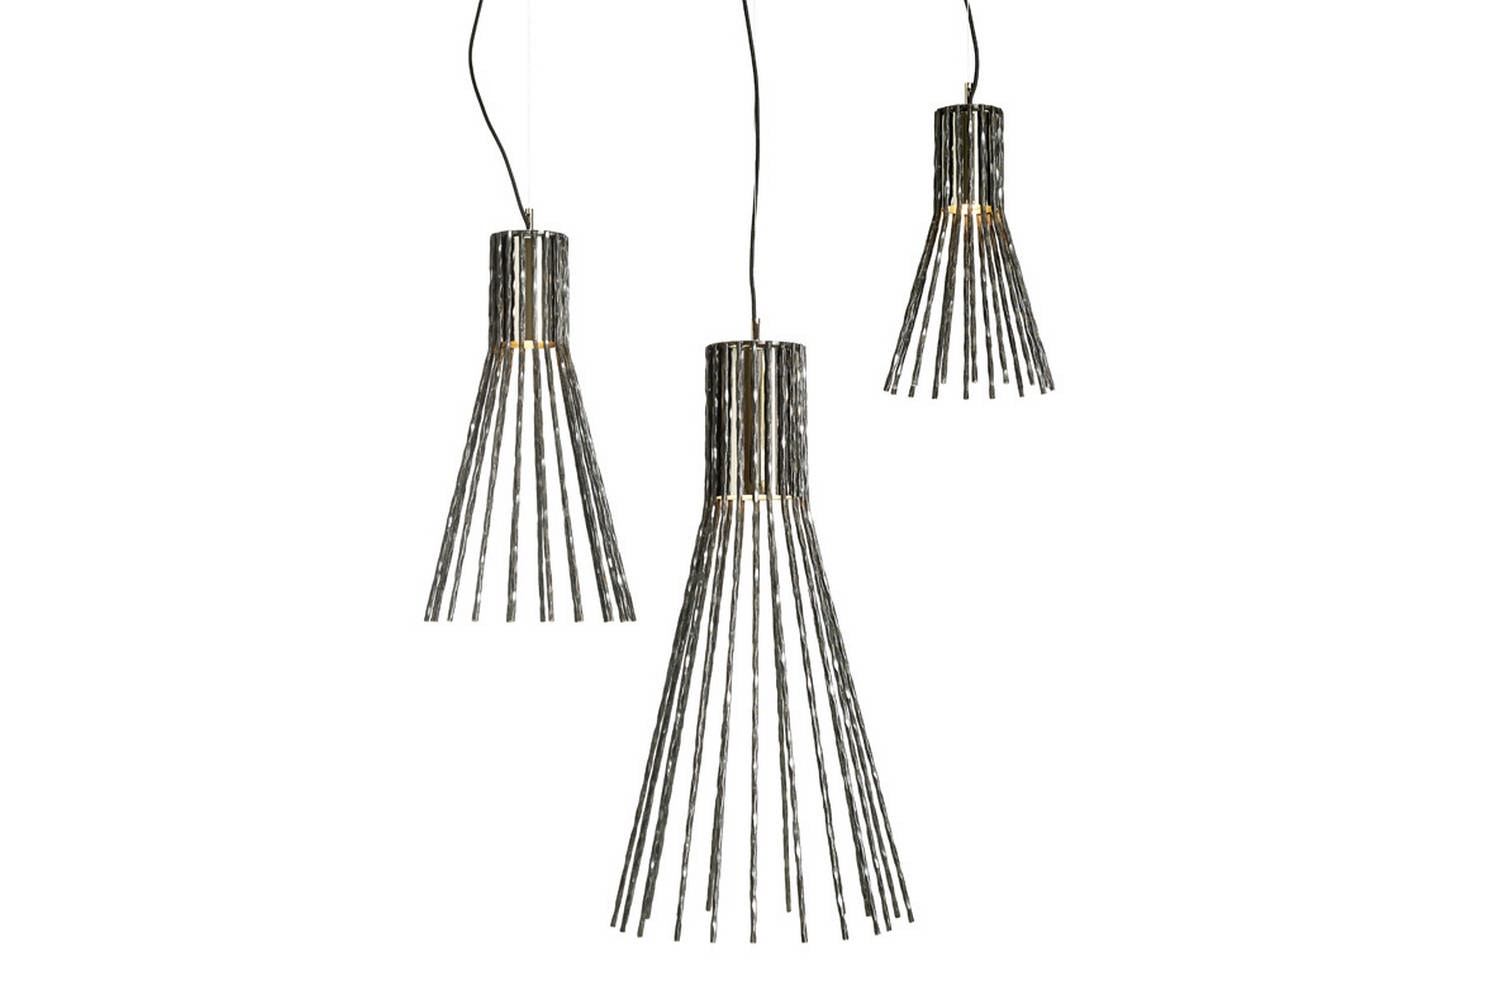 Batti.Batti Suspension Lamp by Skrivo for Opinion Ciatti